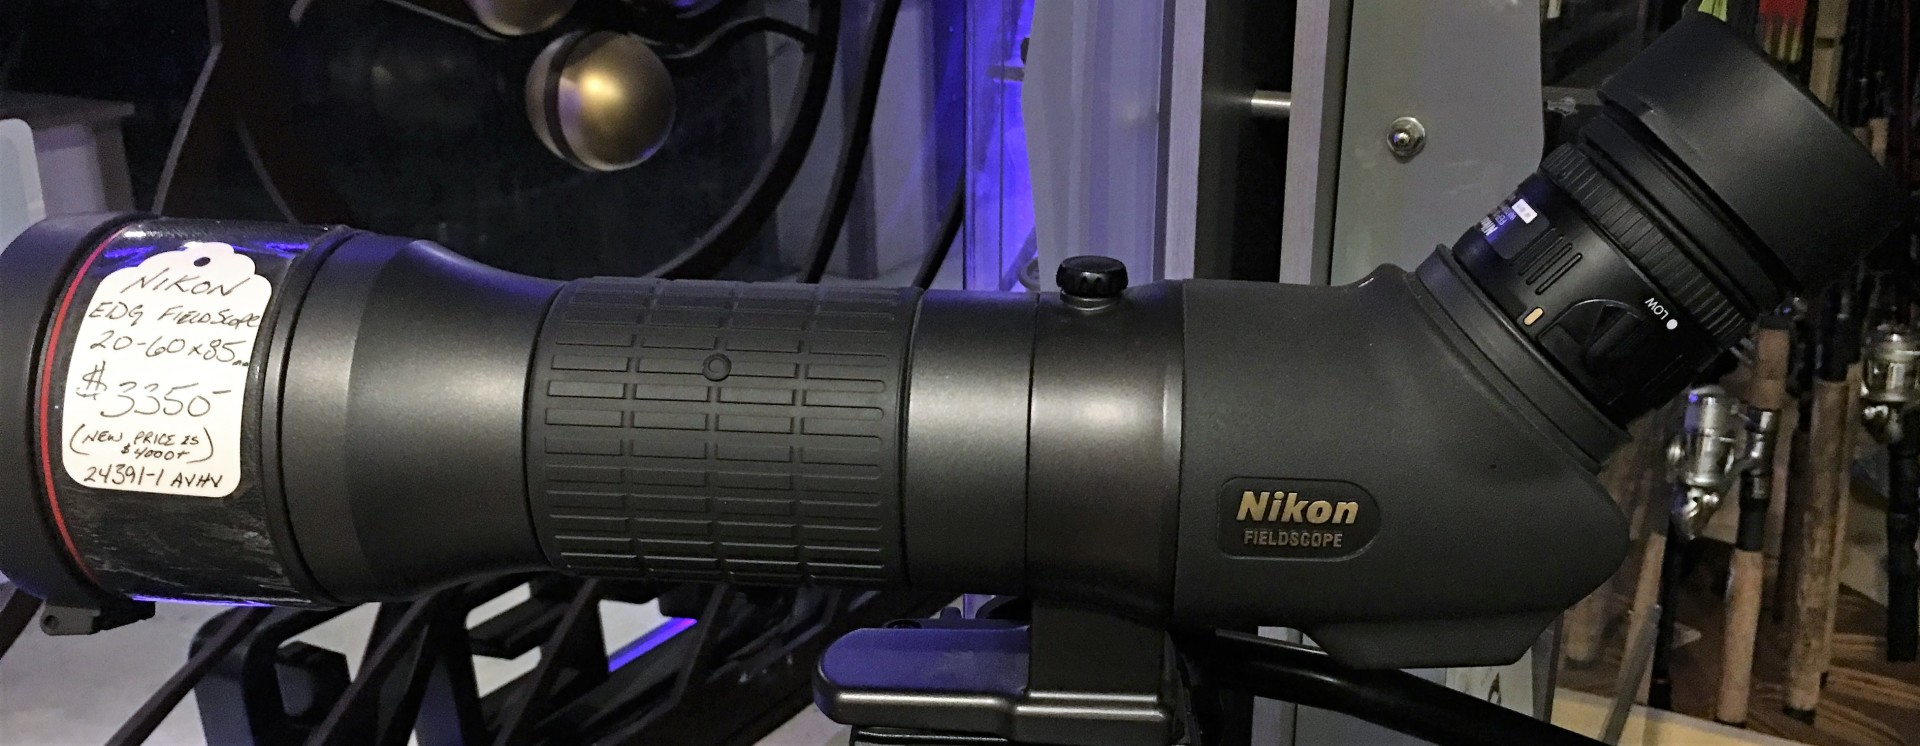 Nikon EDG Fieldscope